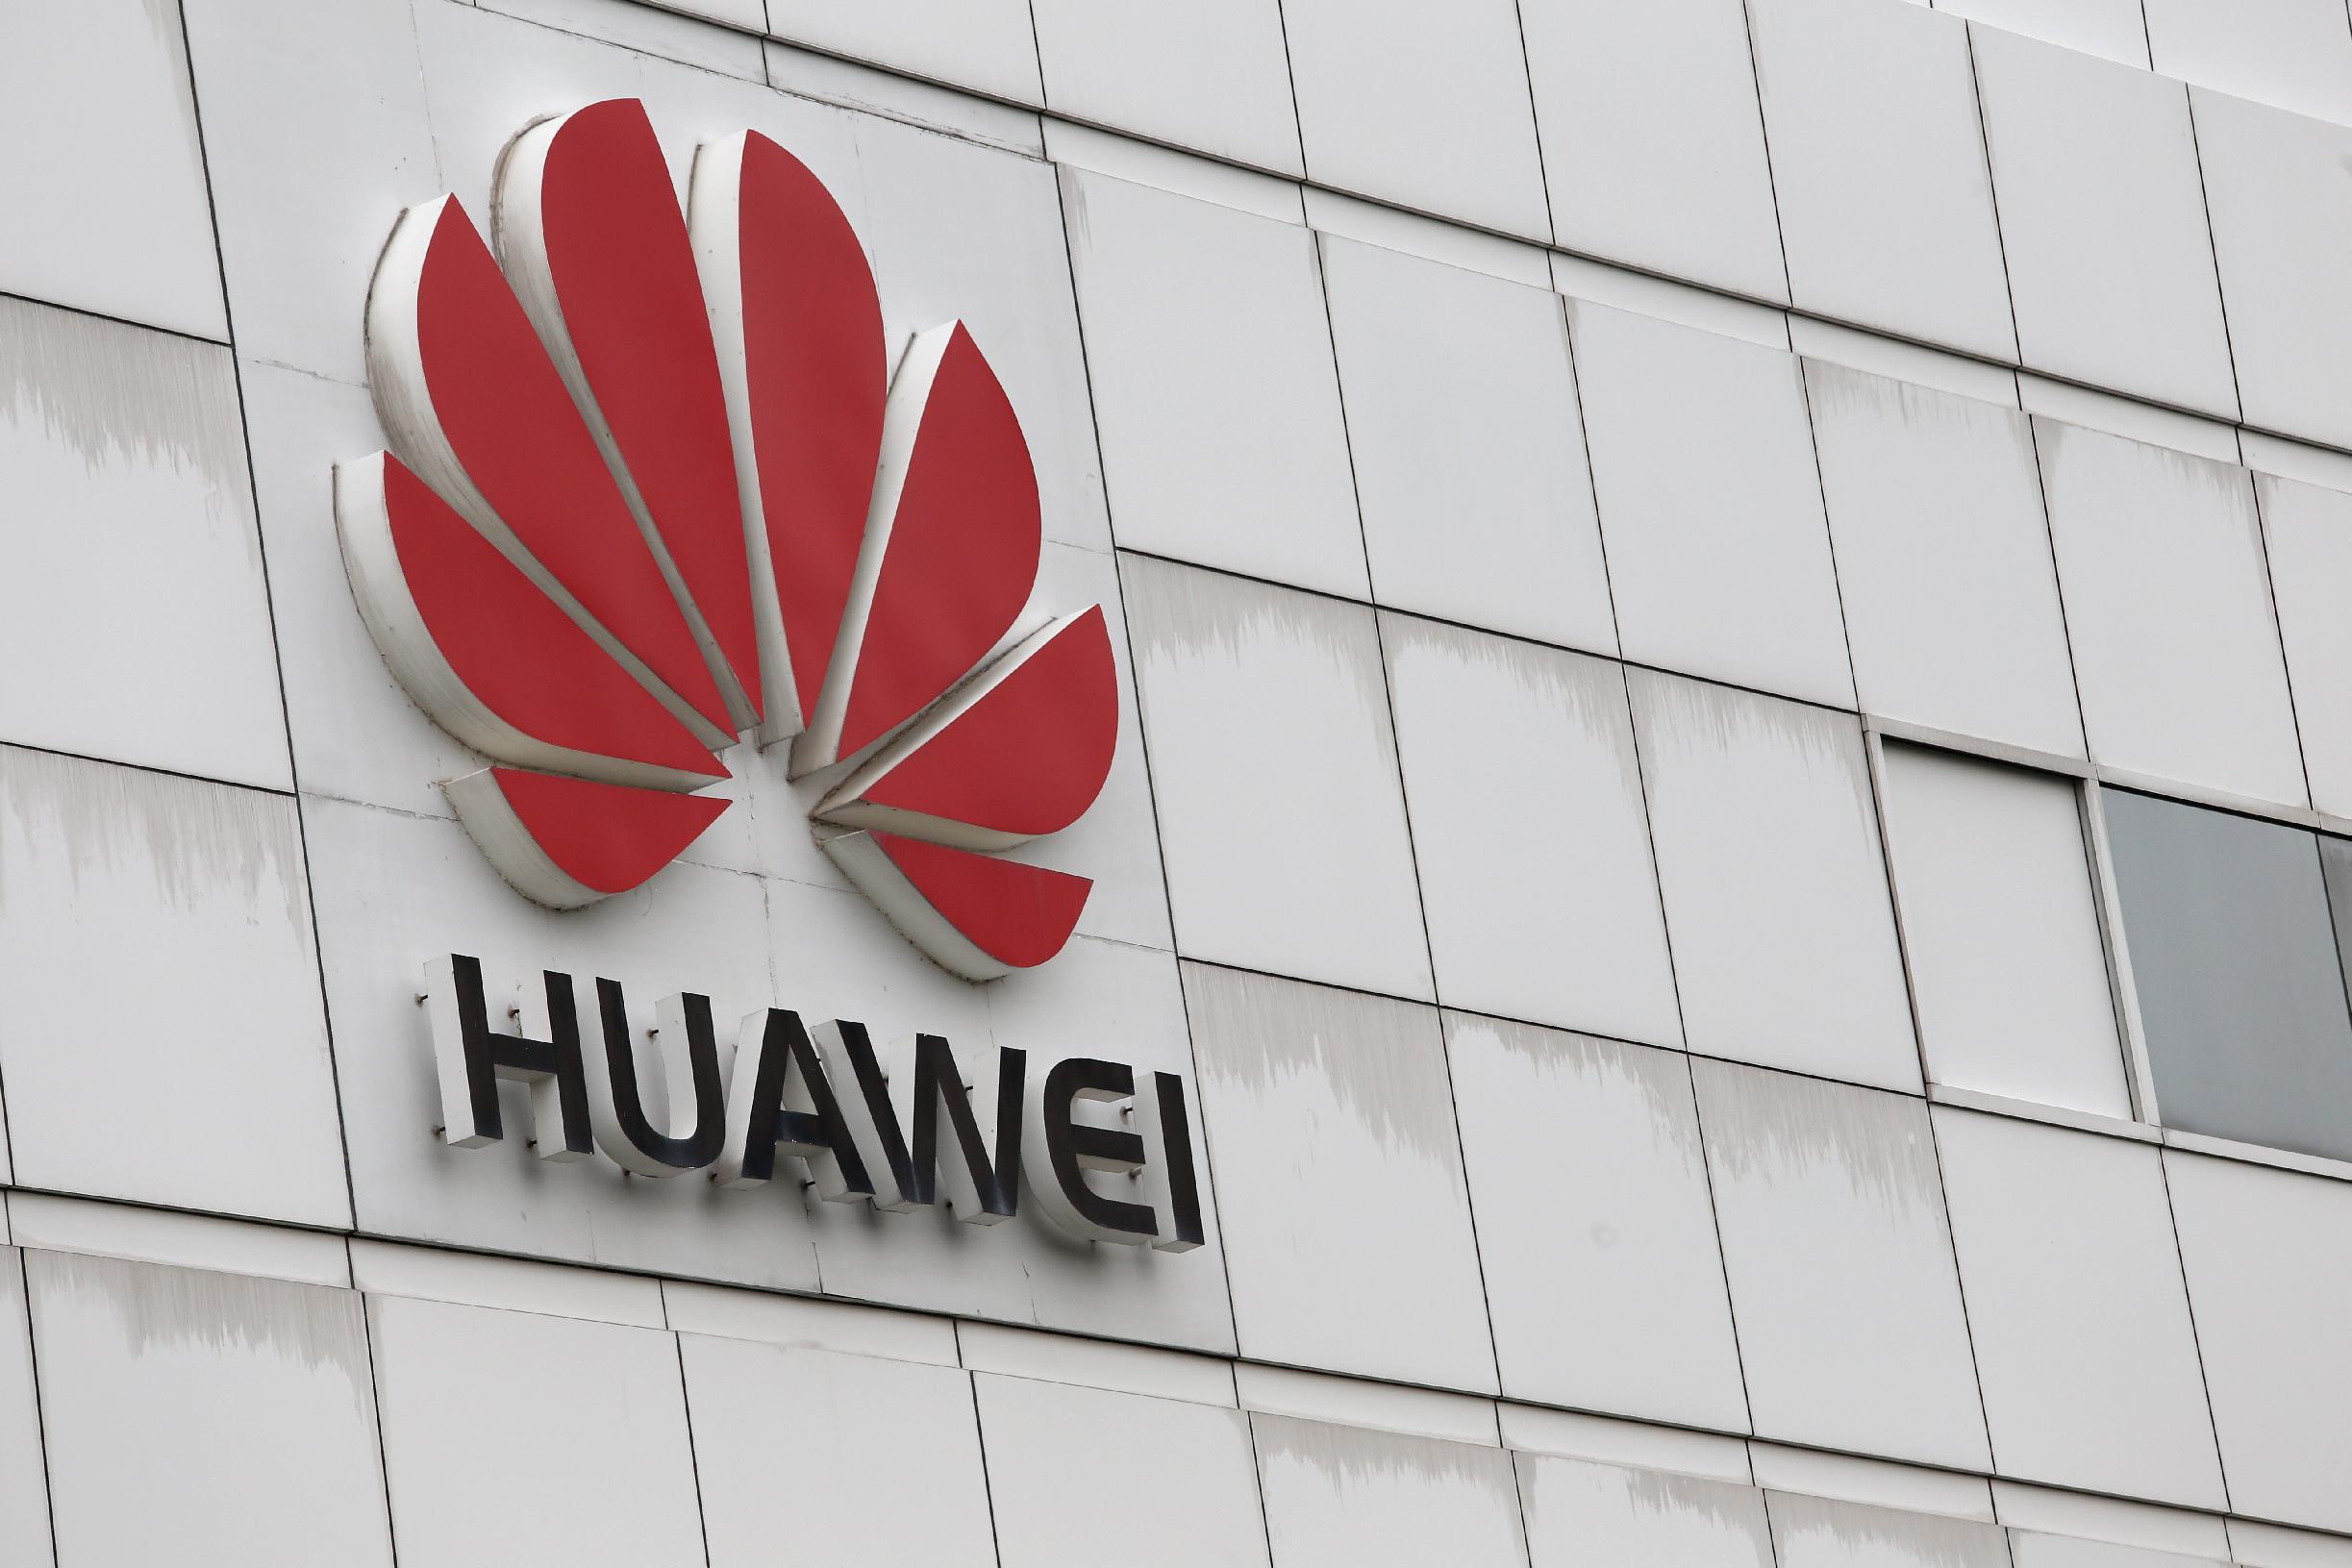 China's Huawei rides Google coattails into new markets